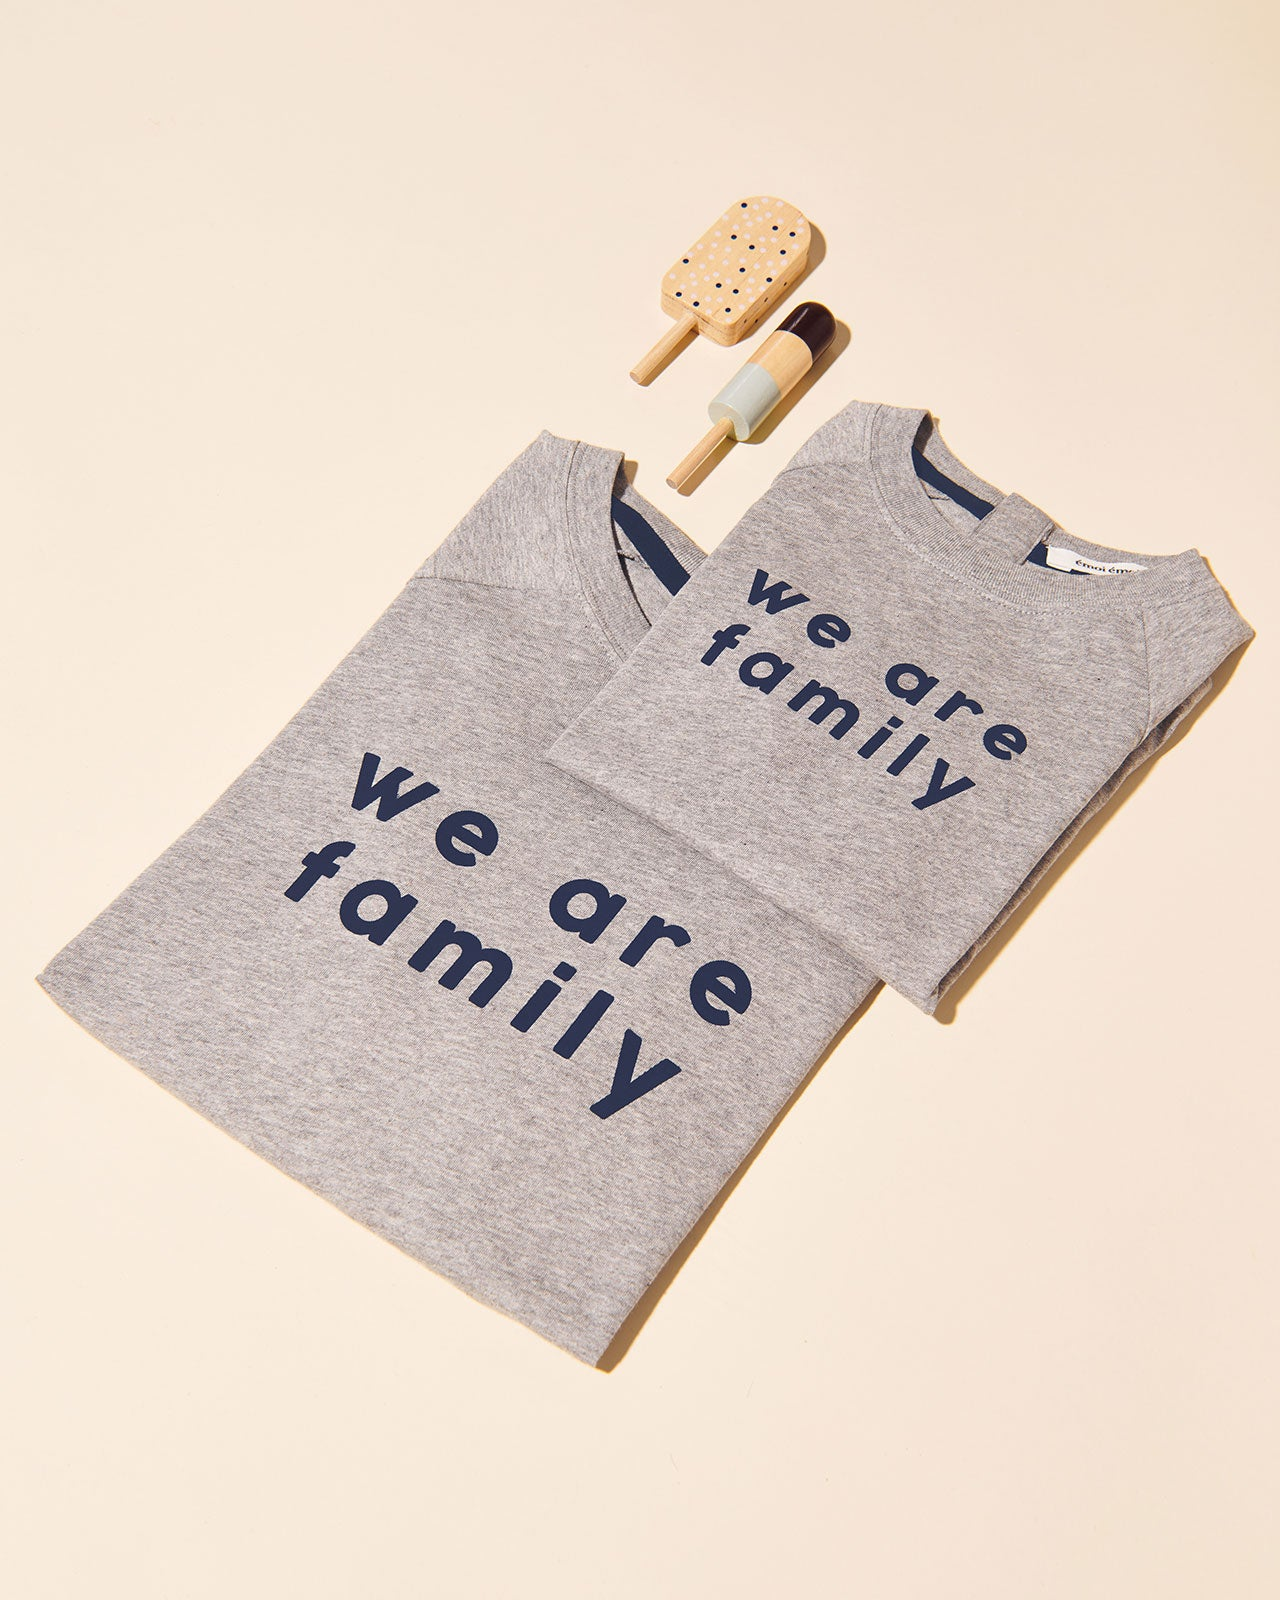 Le t-shirt We are family femme en coton bio - gris chiné